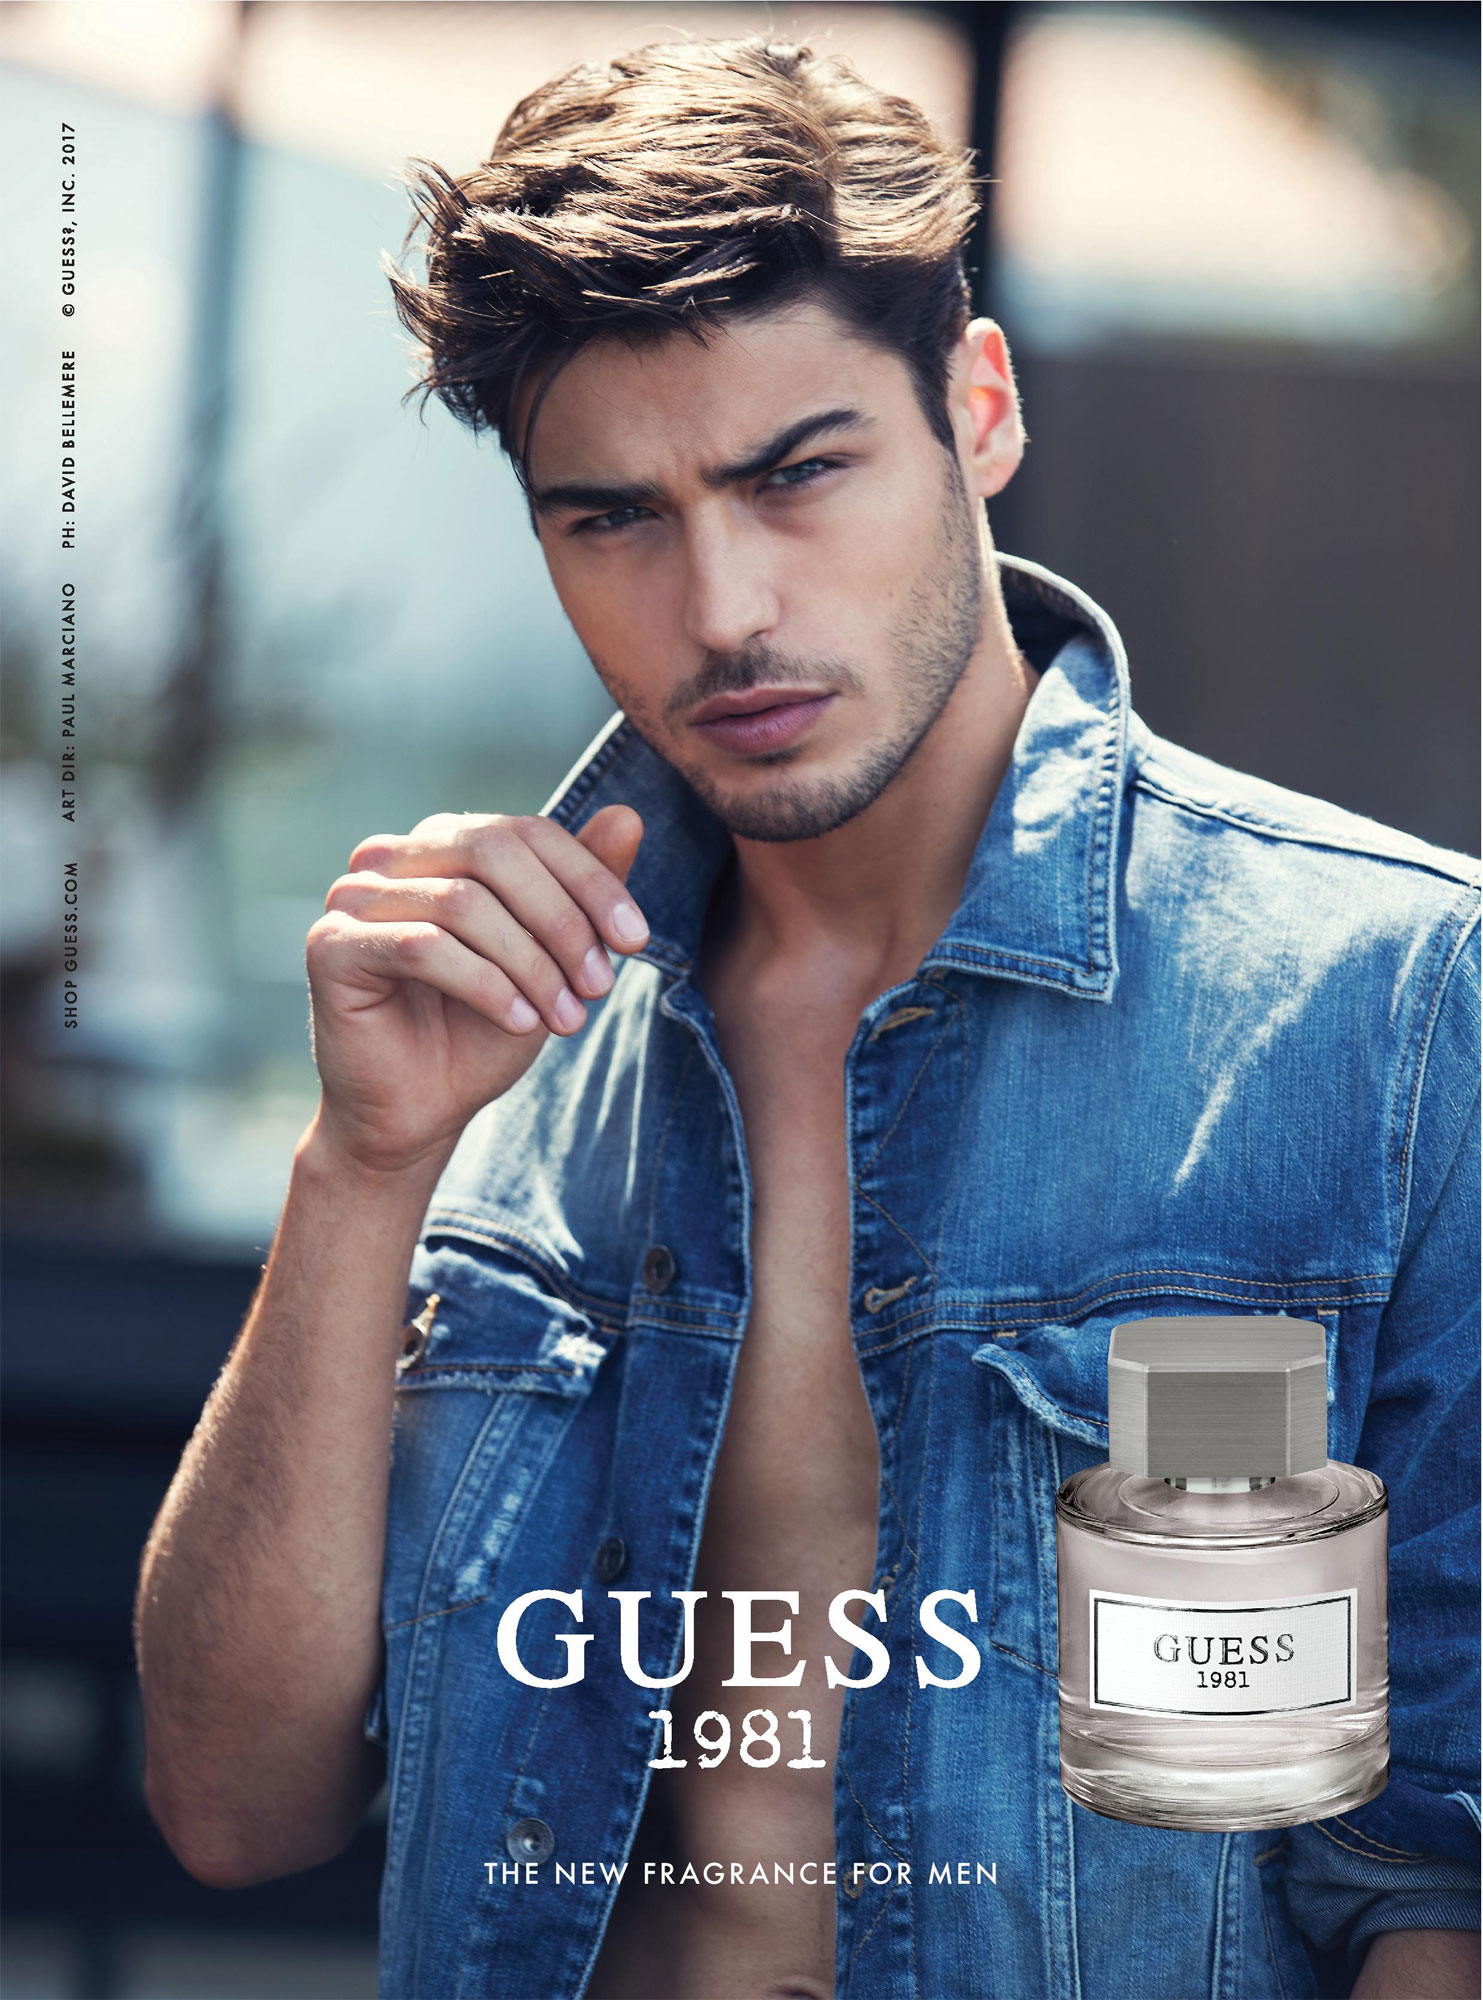 Guess 1981 for Men Guess cologne - a new fragrance for men ...